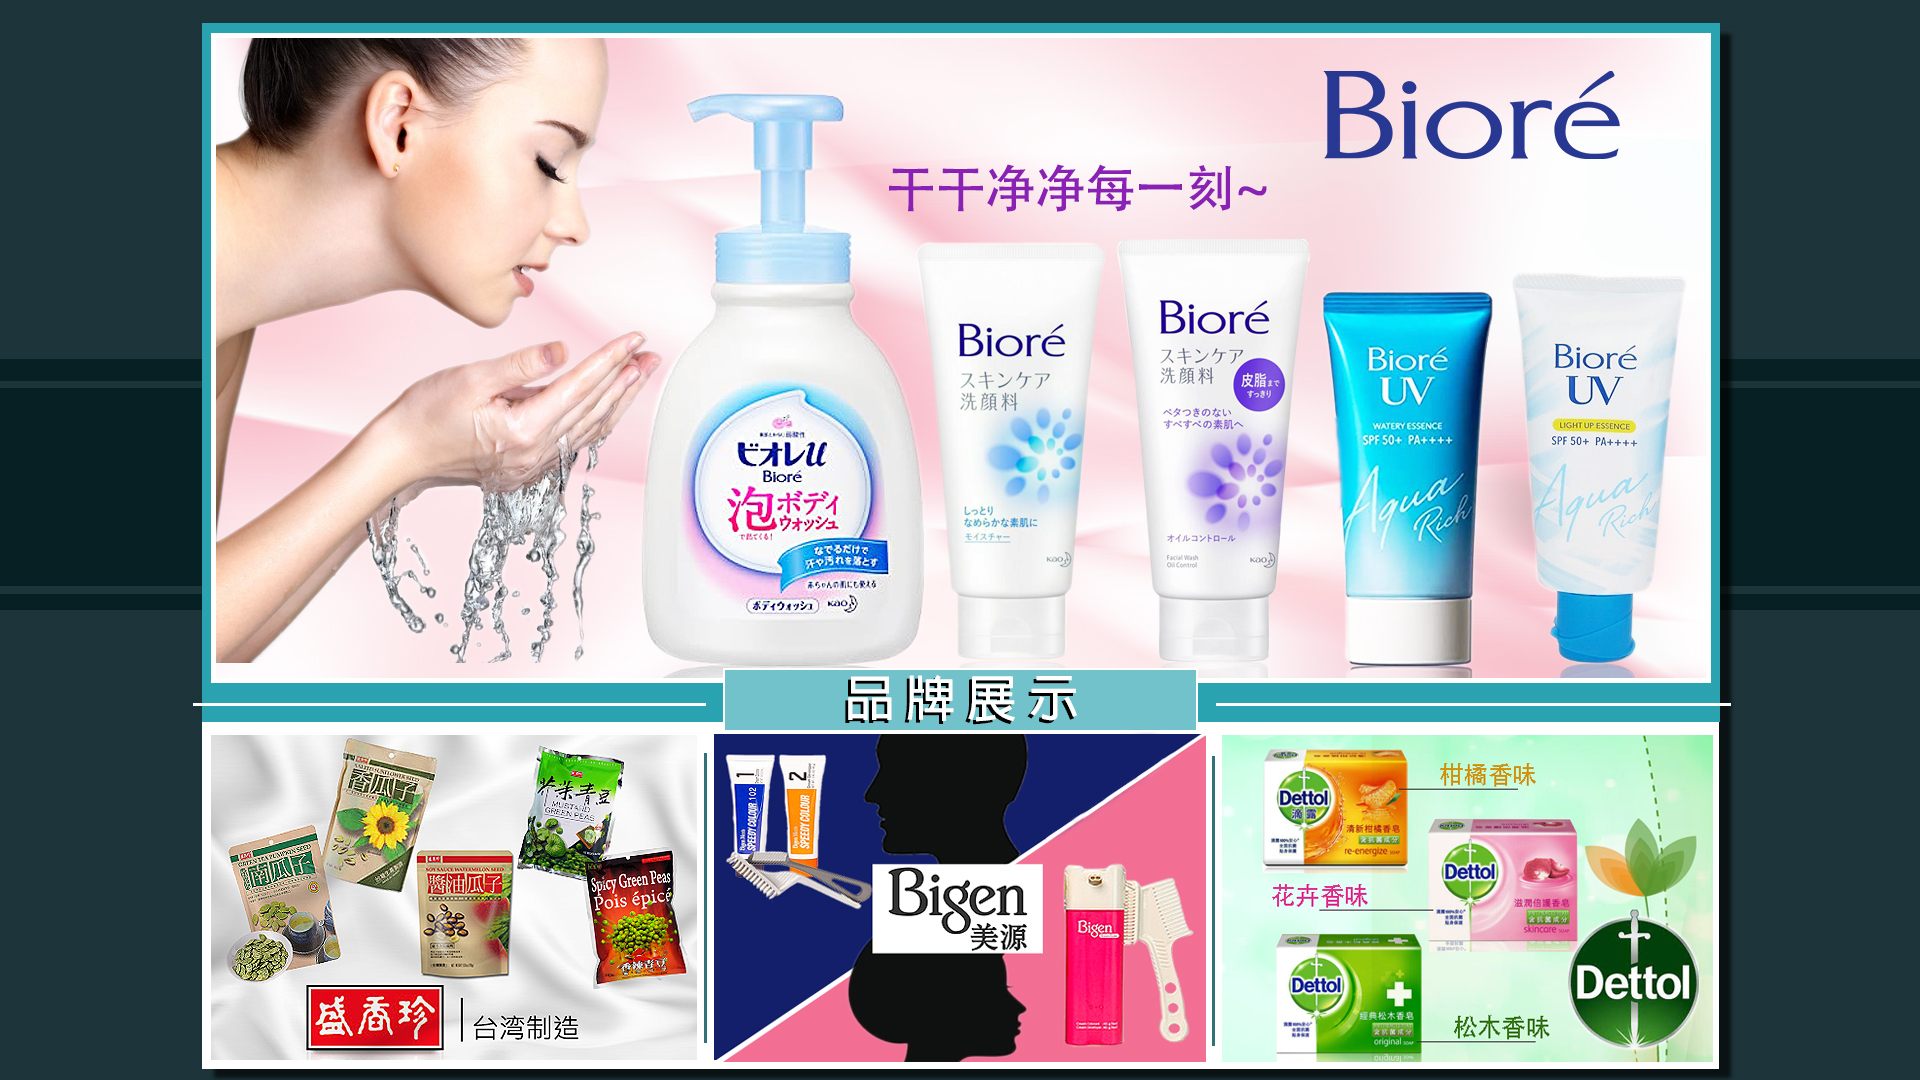 Advertisement for Biore facial cleaners, sunscreens, ShengXiangZhens' Watermelon, Sunflower, and Flavored Seeds along with their Mustard Peas and Spicy Peas. Advertisement for assorted Bigen hair dye. Advertisment for Dettol's Citrus, Flower, and Pine Flavored Soaps.